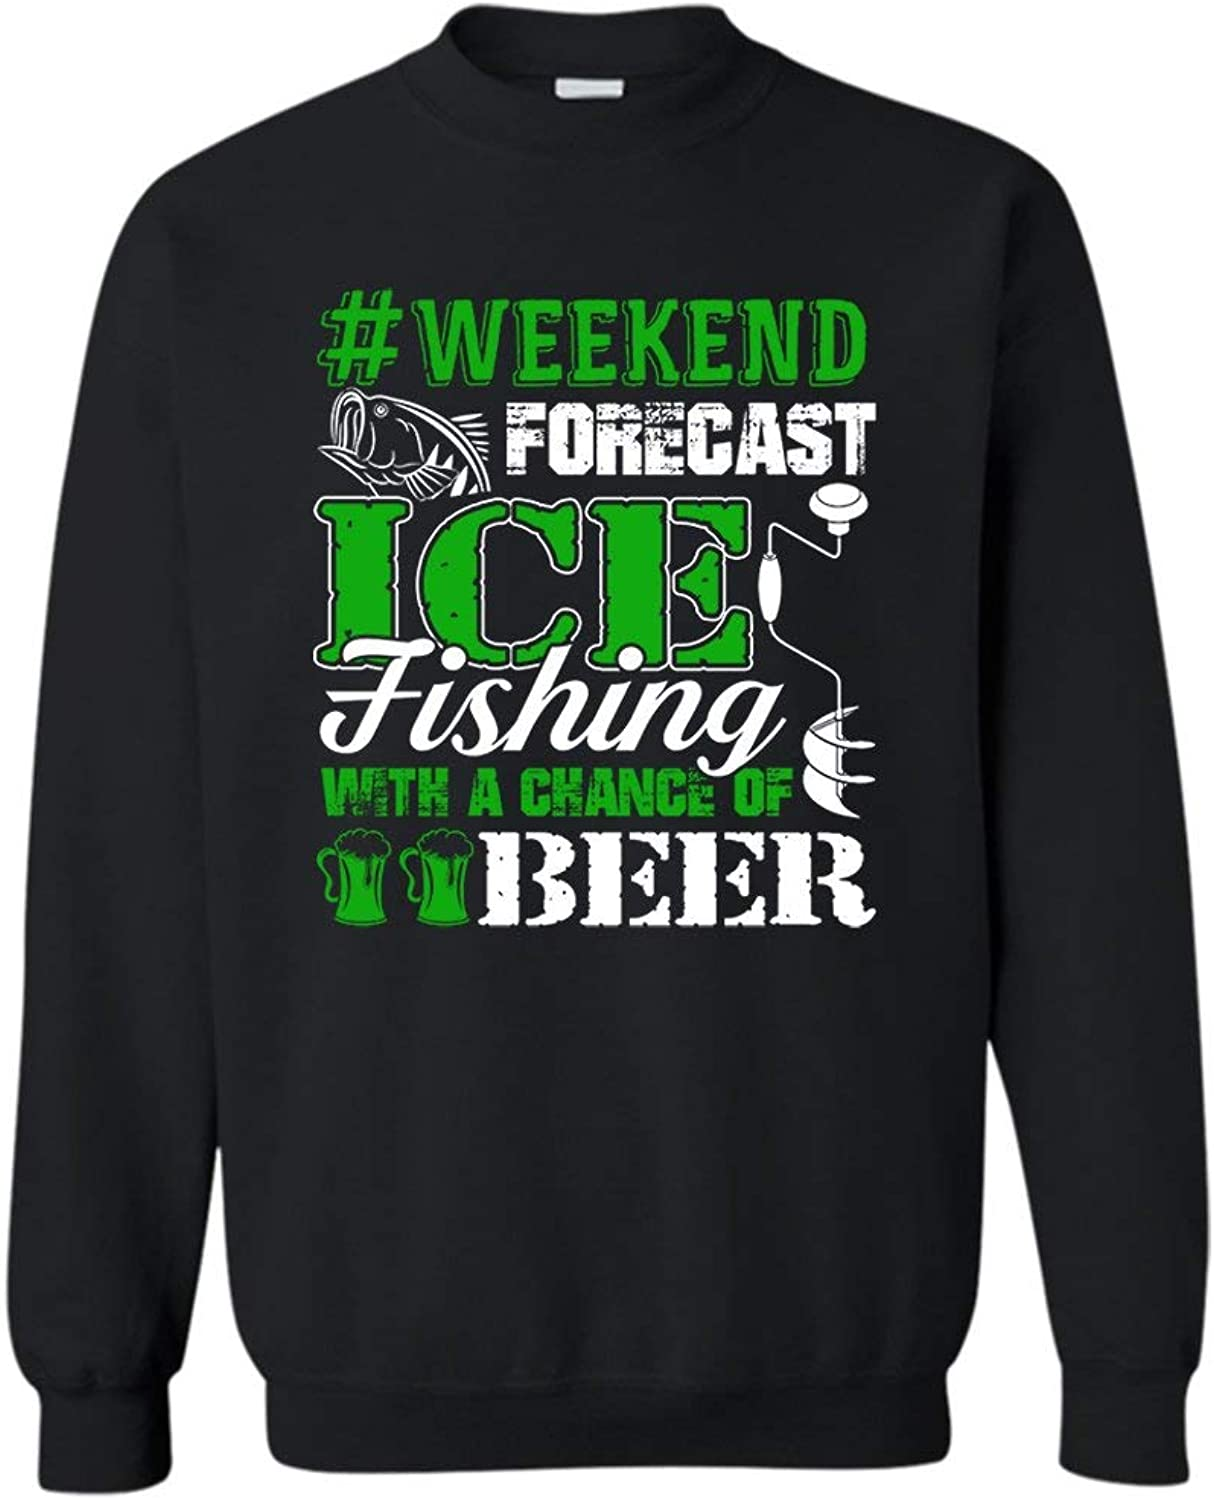 Ice Fishing Weekend Forecast Sweatshirt, Long Sleeve Shirts